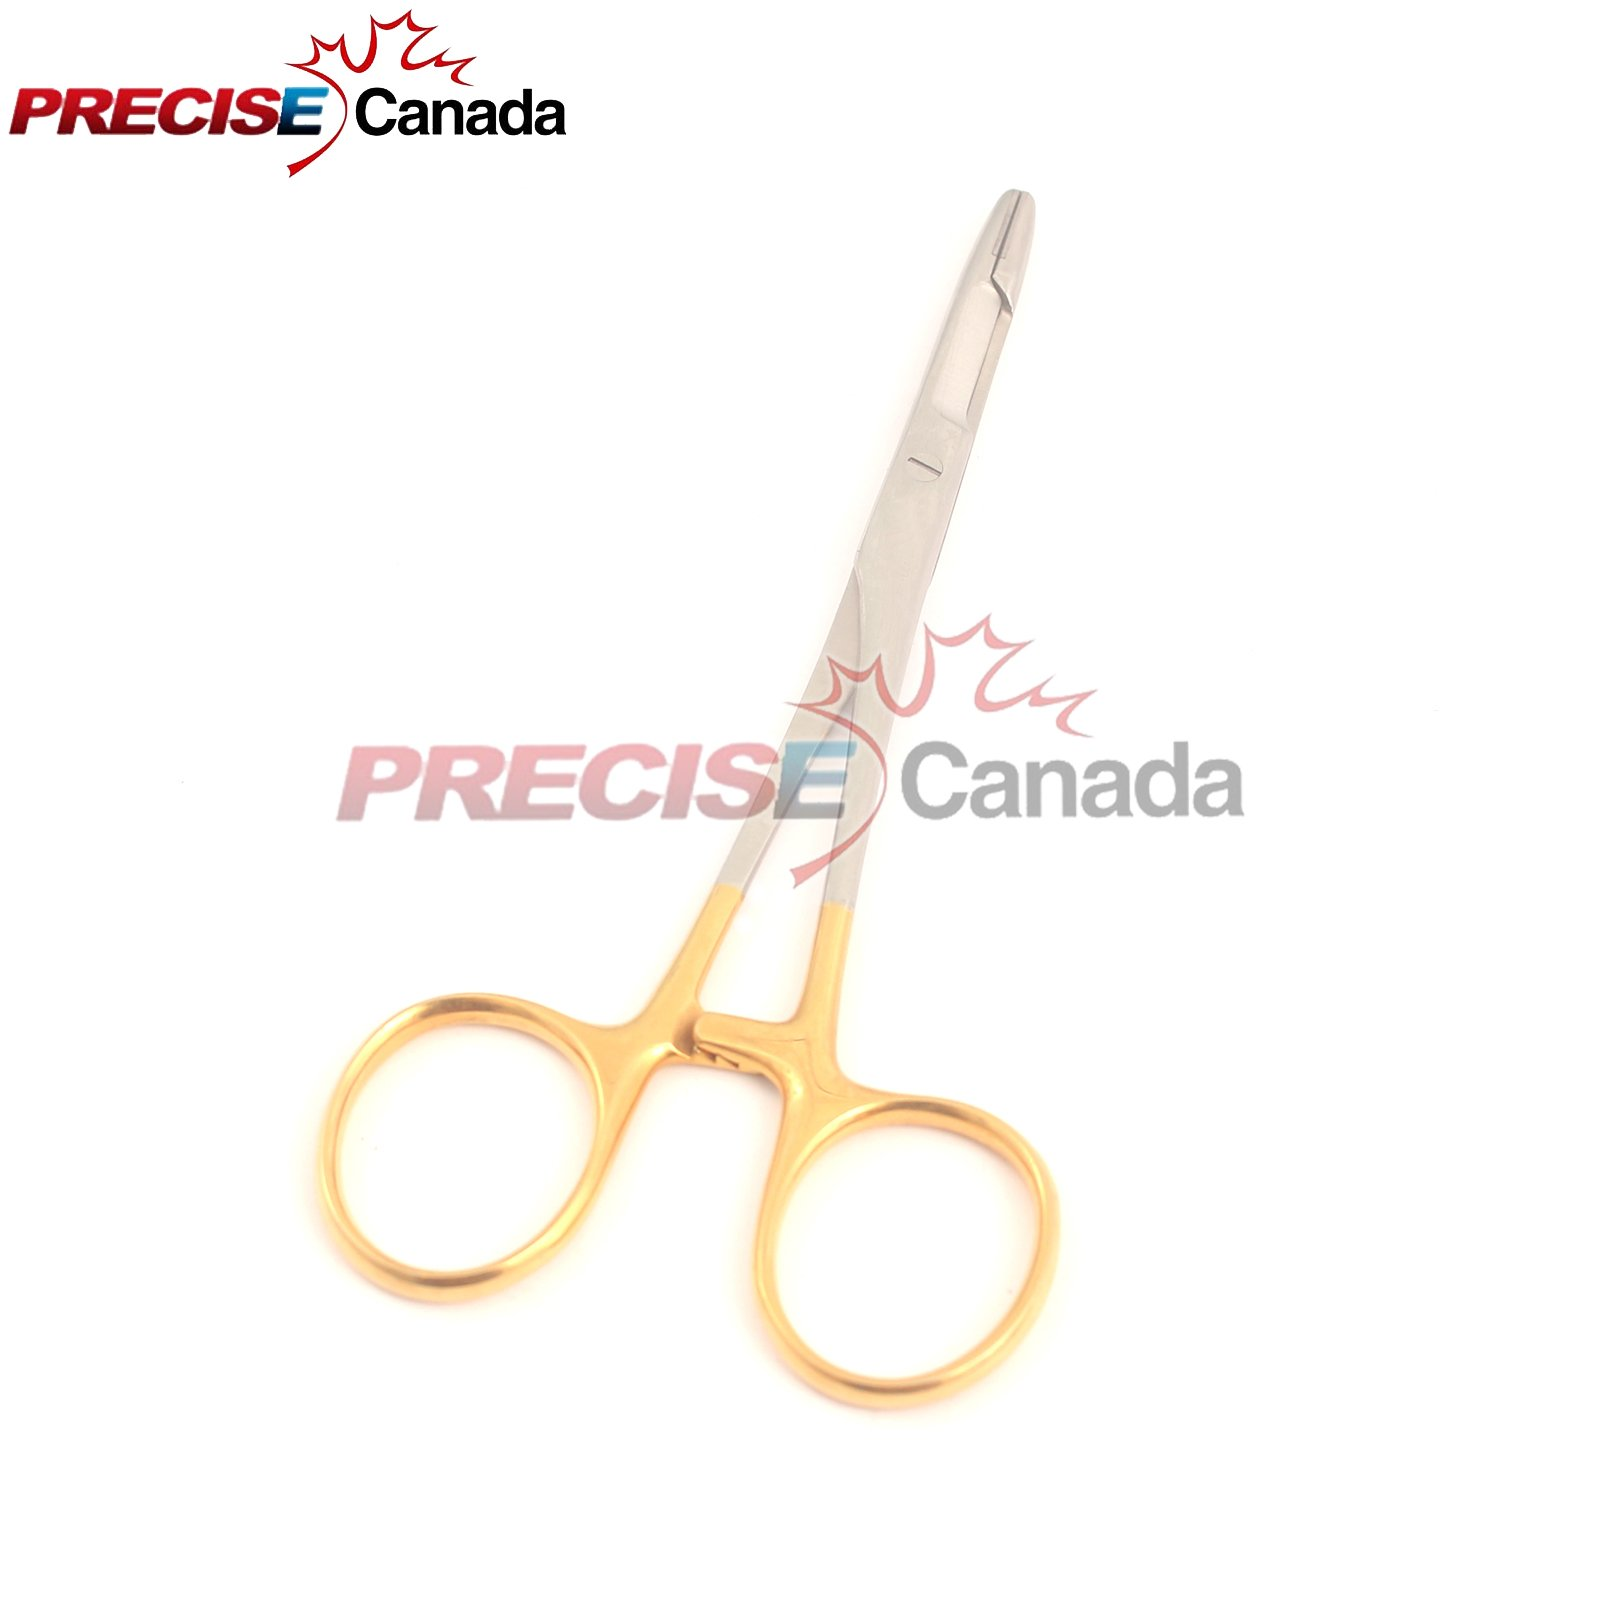 PRECISE CANADA: Olsen HEGAR Needle Holder and Scissor Combination, 5-1/2 INCH, TC, German Grade PC by PRECISE CANADA